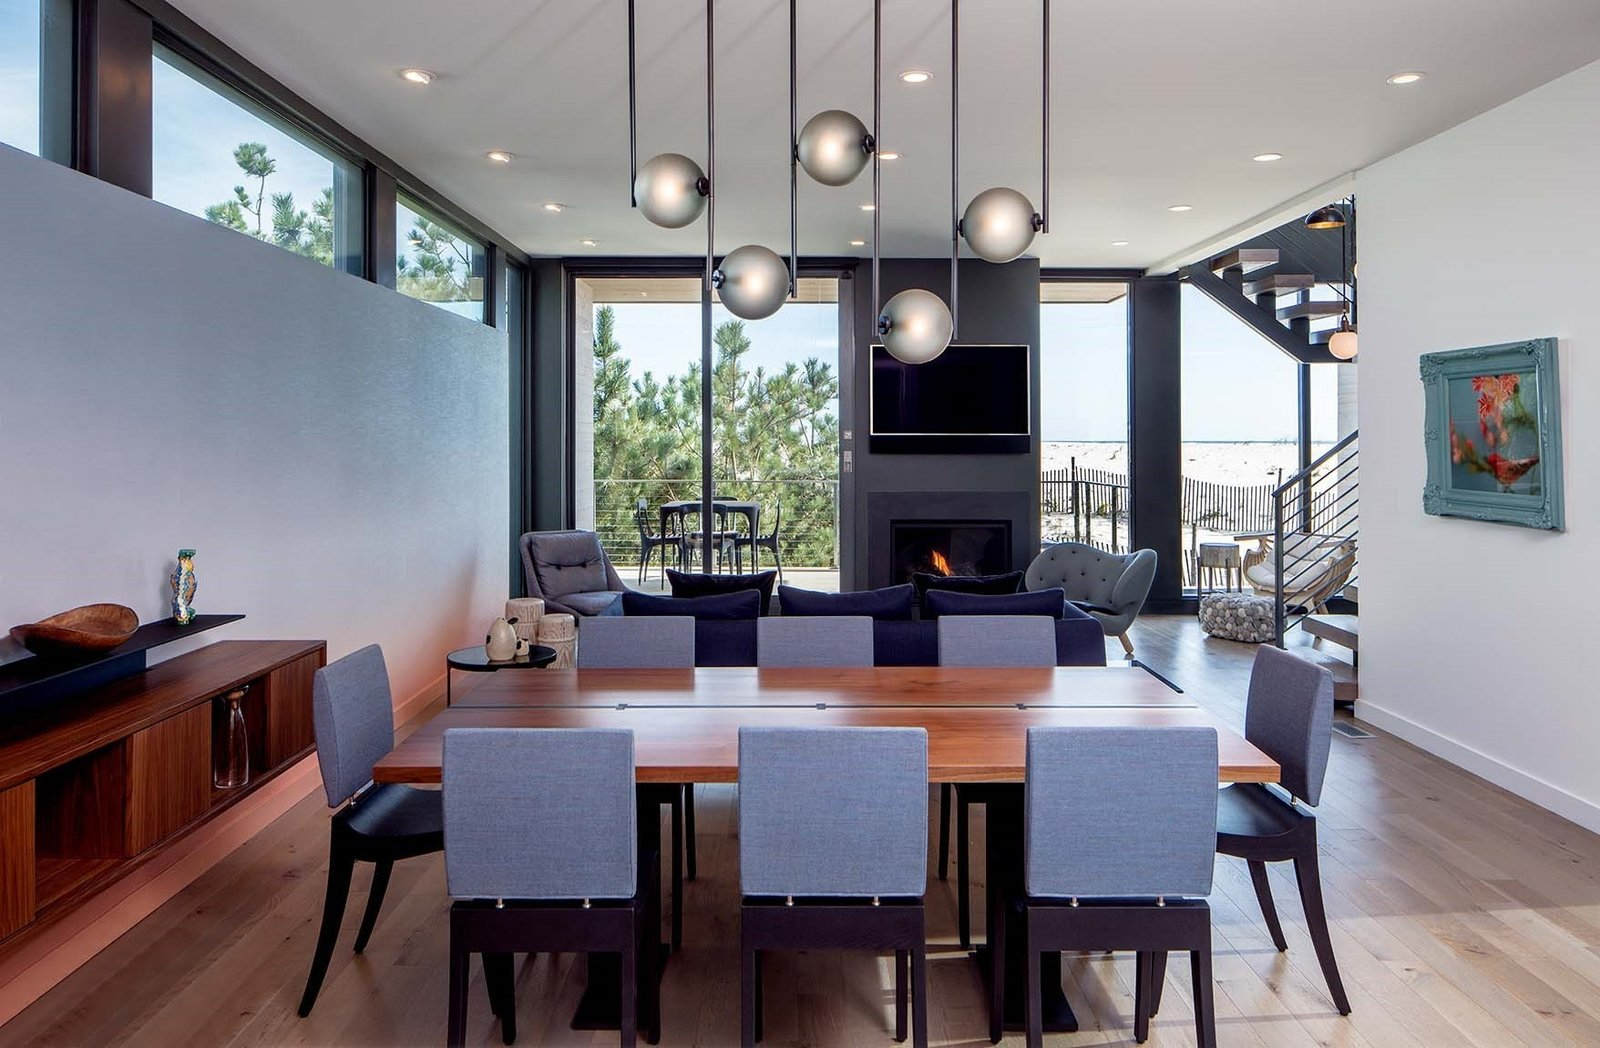 Beach Haven Residence, Dining Table and Living Room.   Beach Haven Residence by Specht Architects